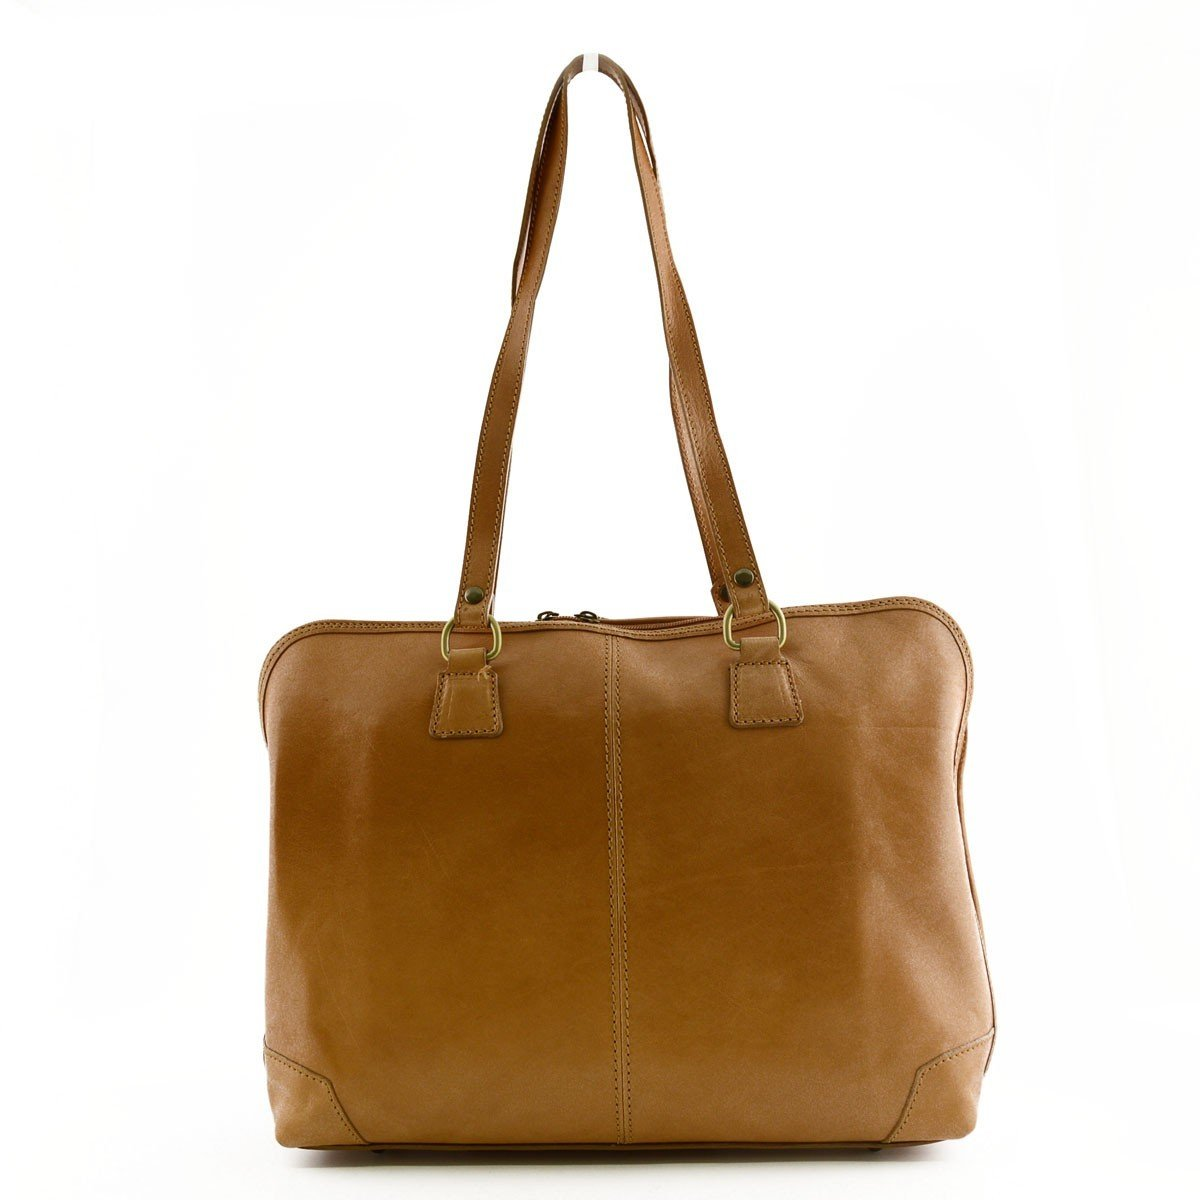 Made In Italy Genuine Leather Woman Business Bag 1 Compartment Color Honey - Business Bag B01D10JT16